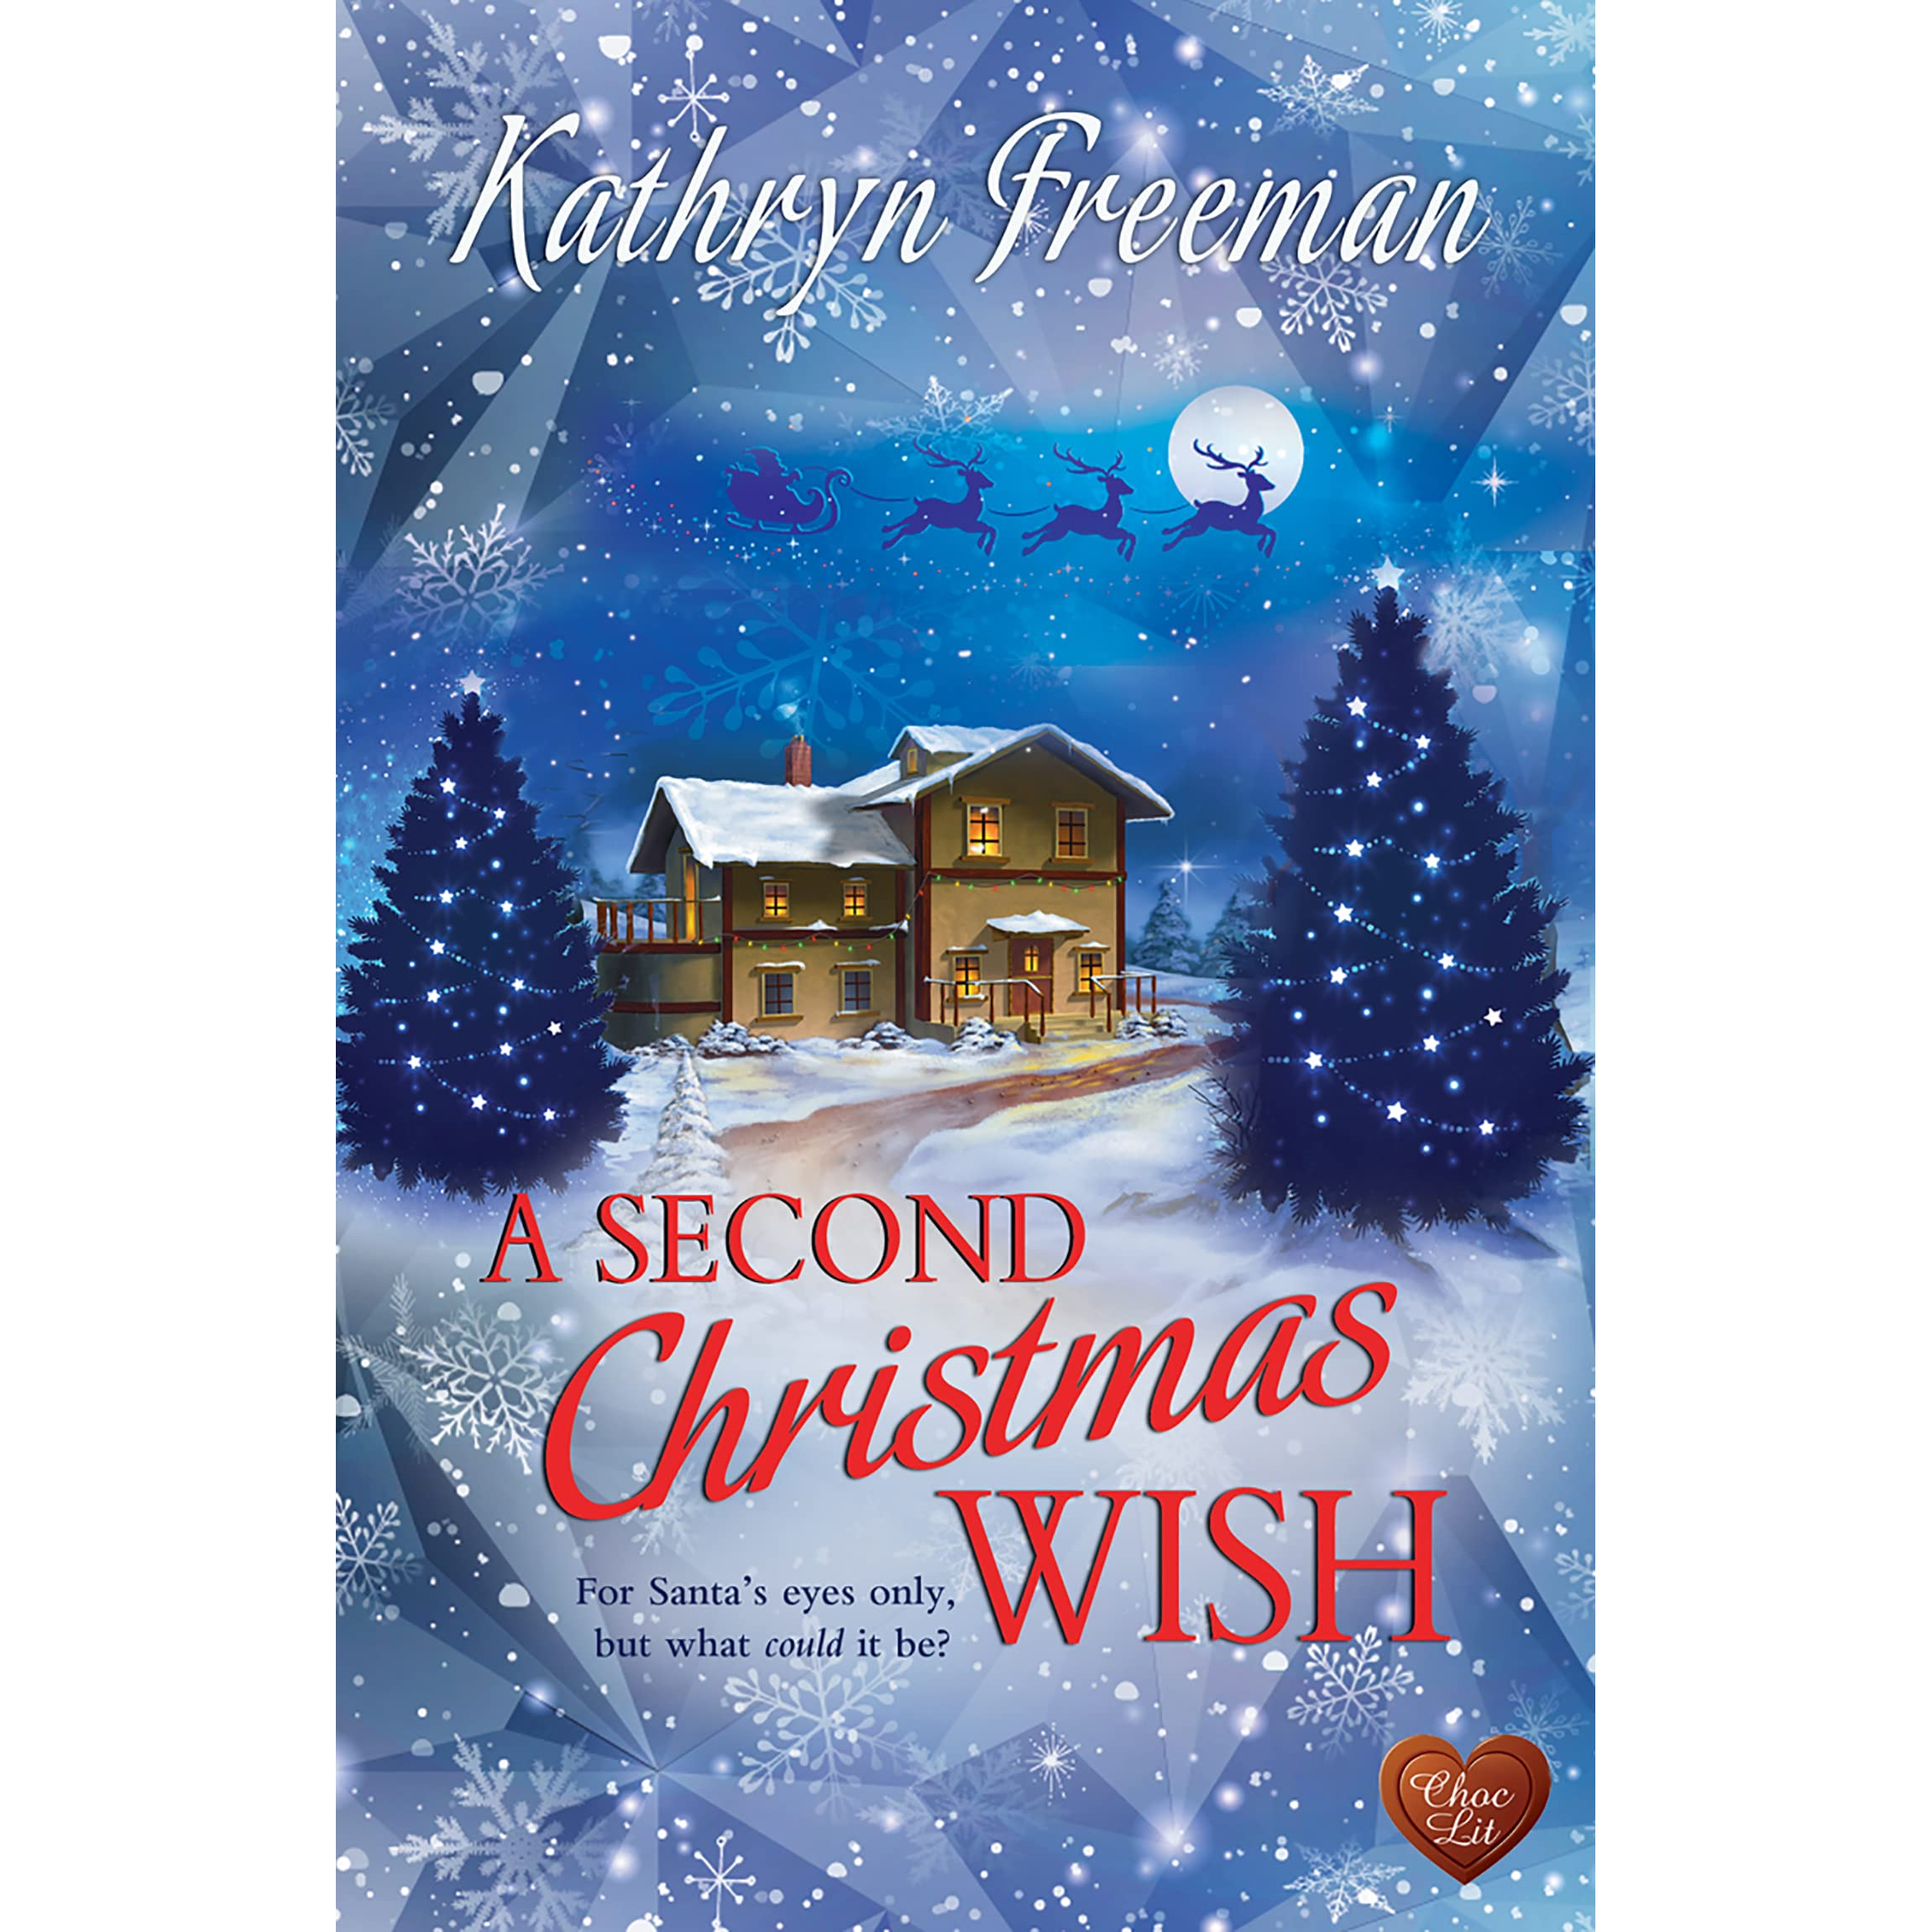 A Second Christmas Wish by Kathryn Freeman